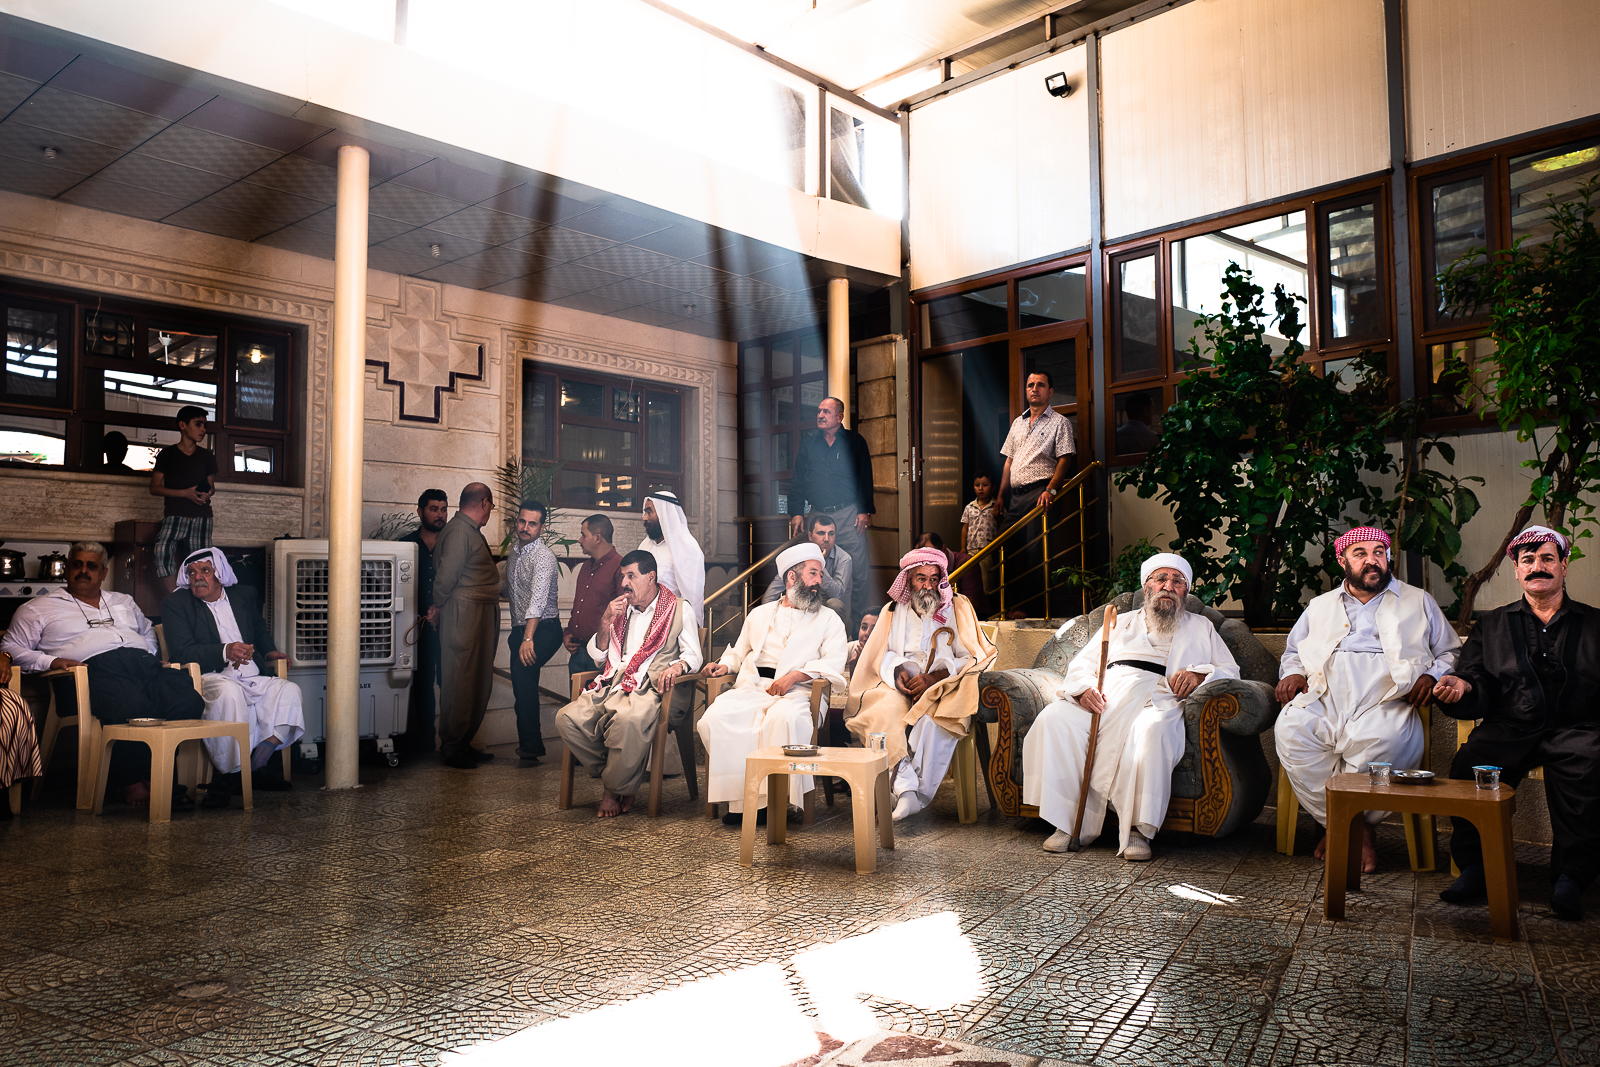 All the importan men of yazidi religion attending the start of Cejna Cemaiya festival at Baba Sheikh's house